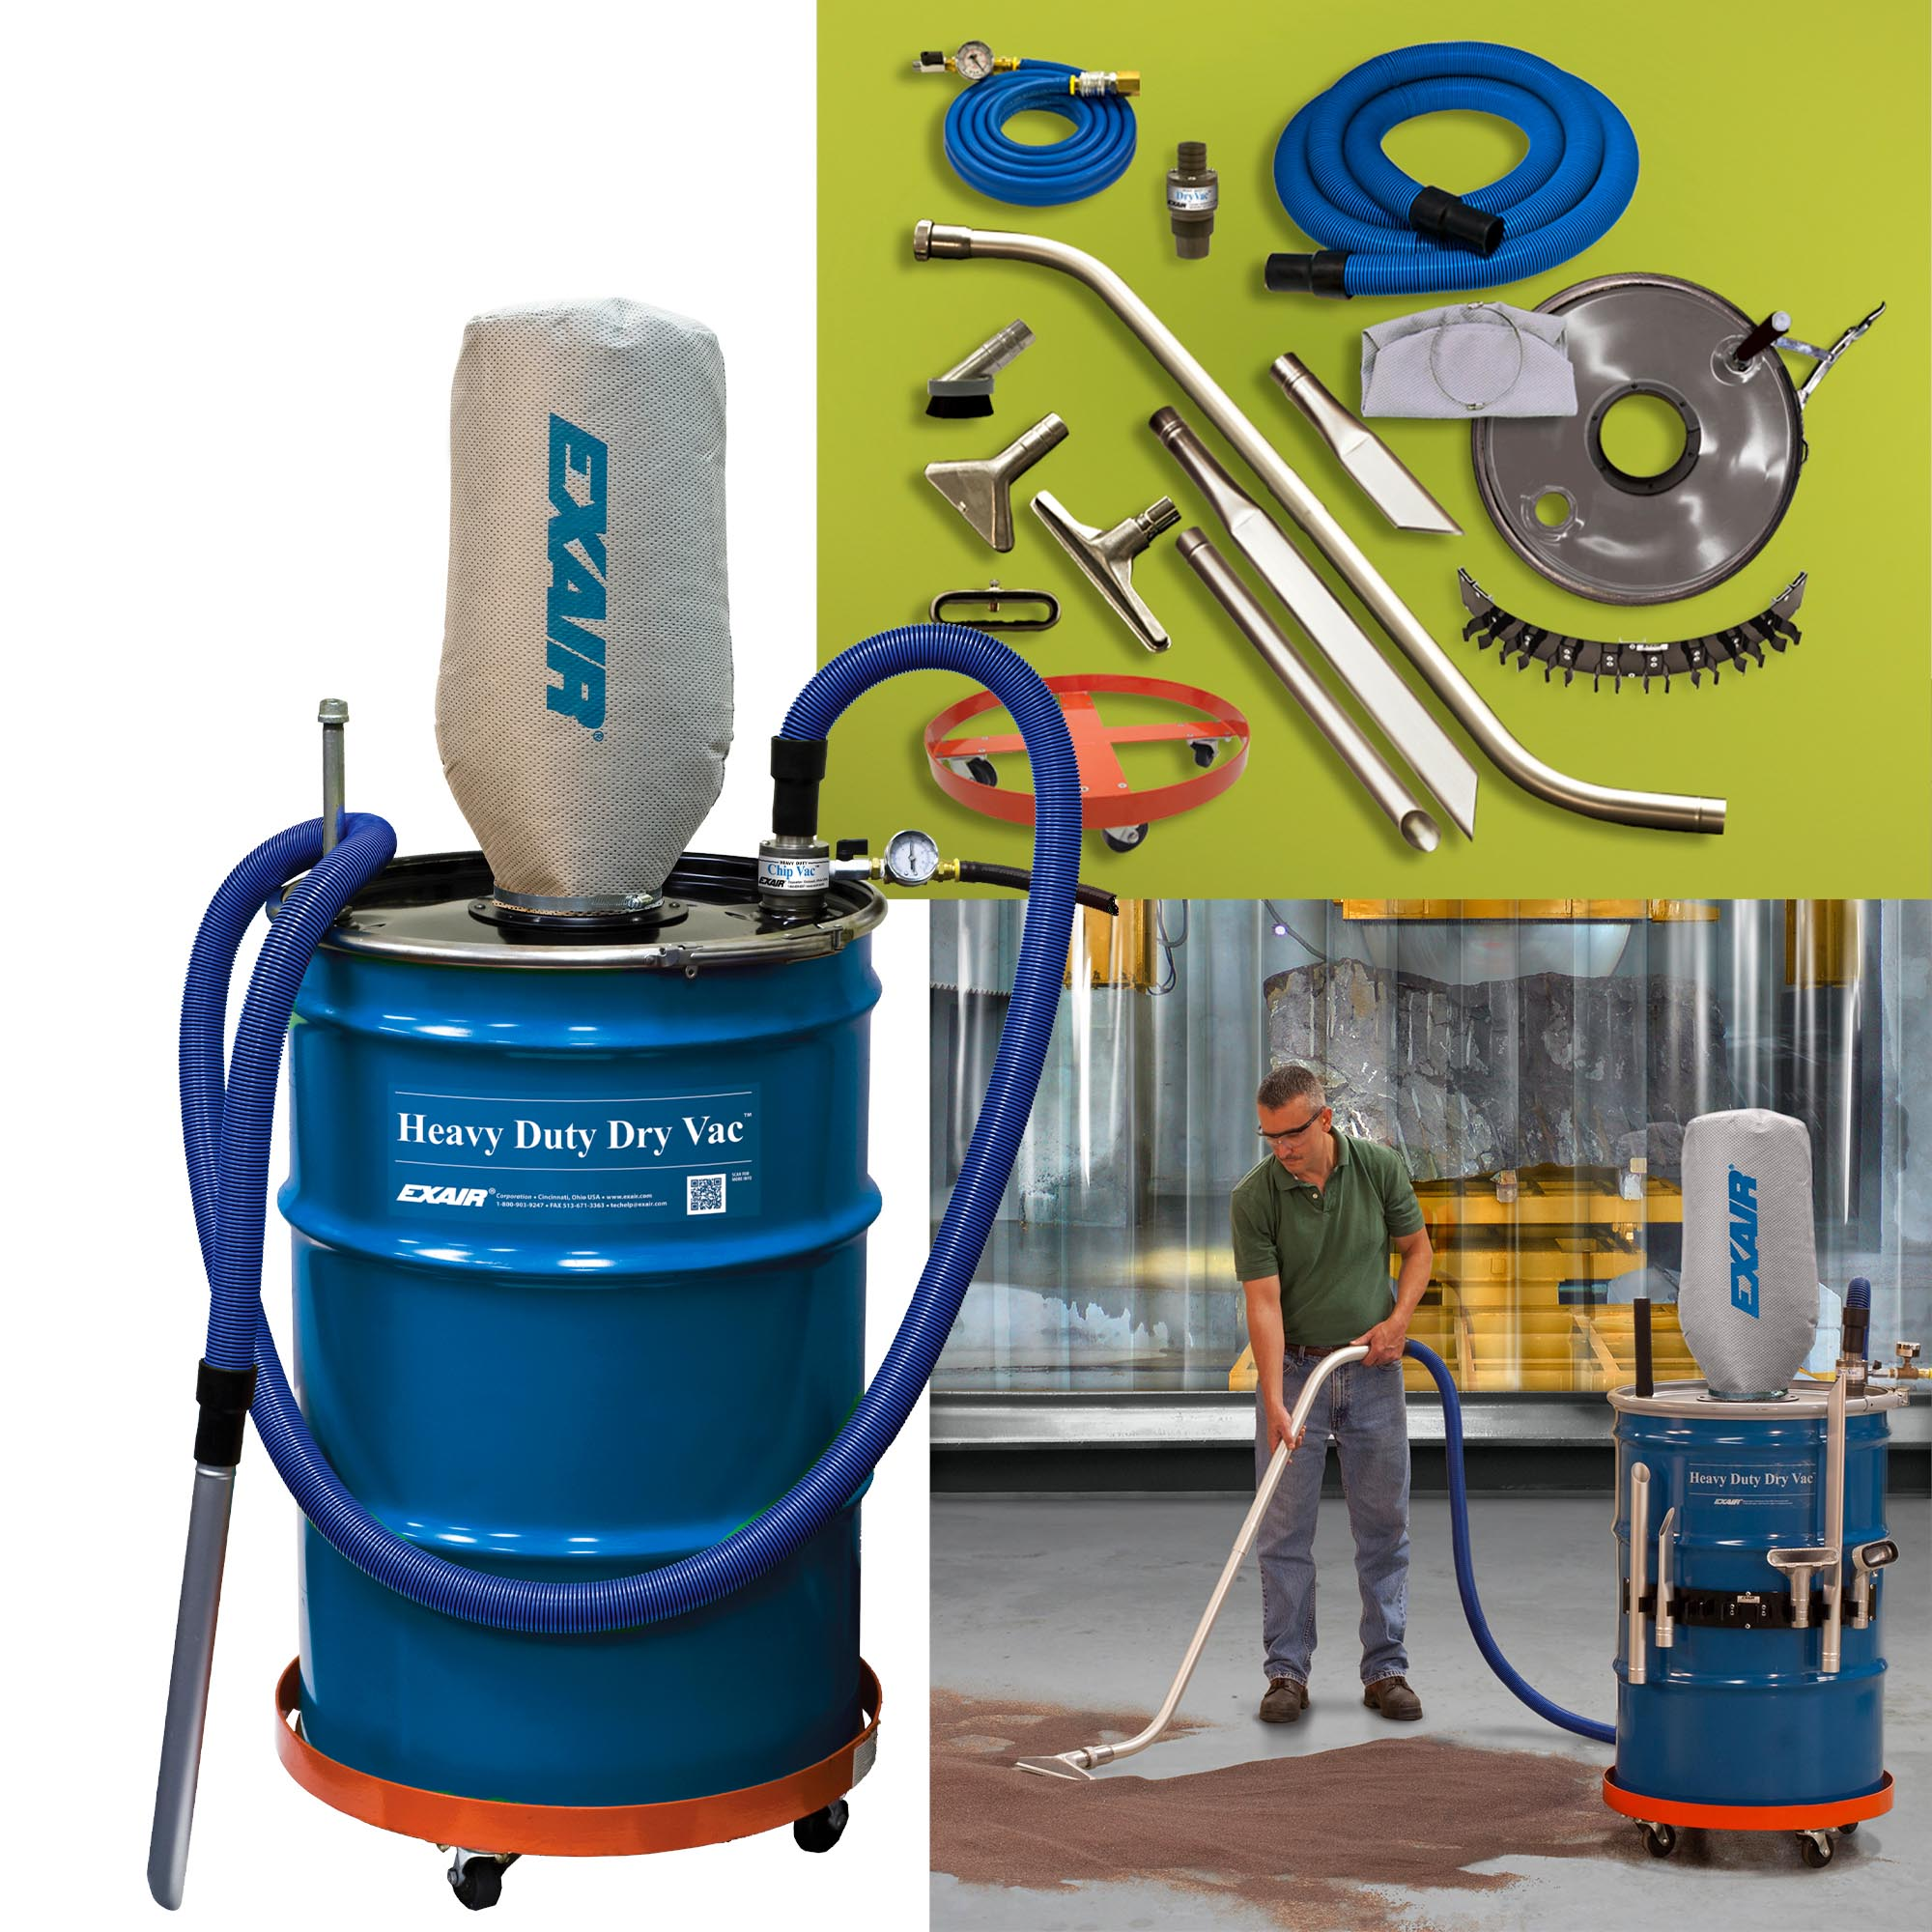 The Model 6197 Heavy Duty Dry Vac System accessories include replacement filters, drums, drum dollys, tools, tool holders and more!